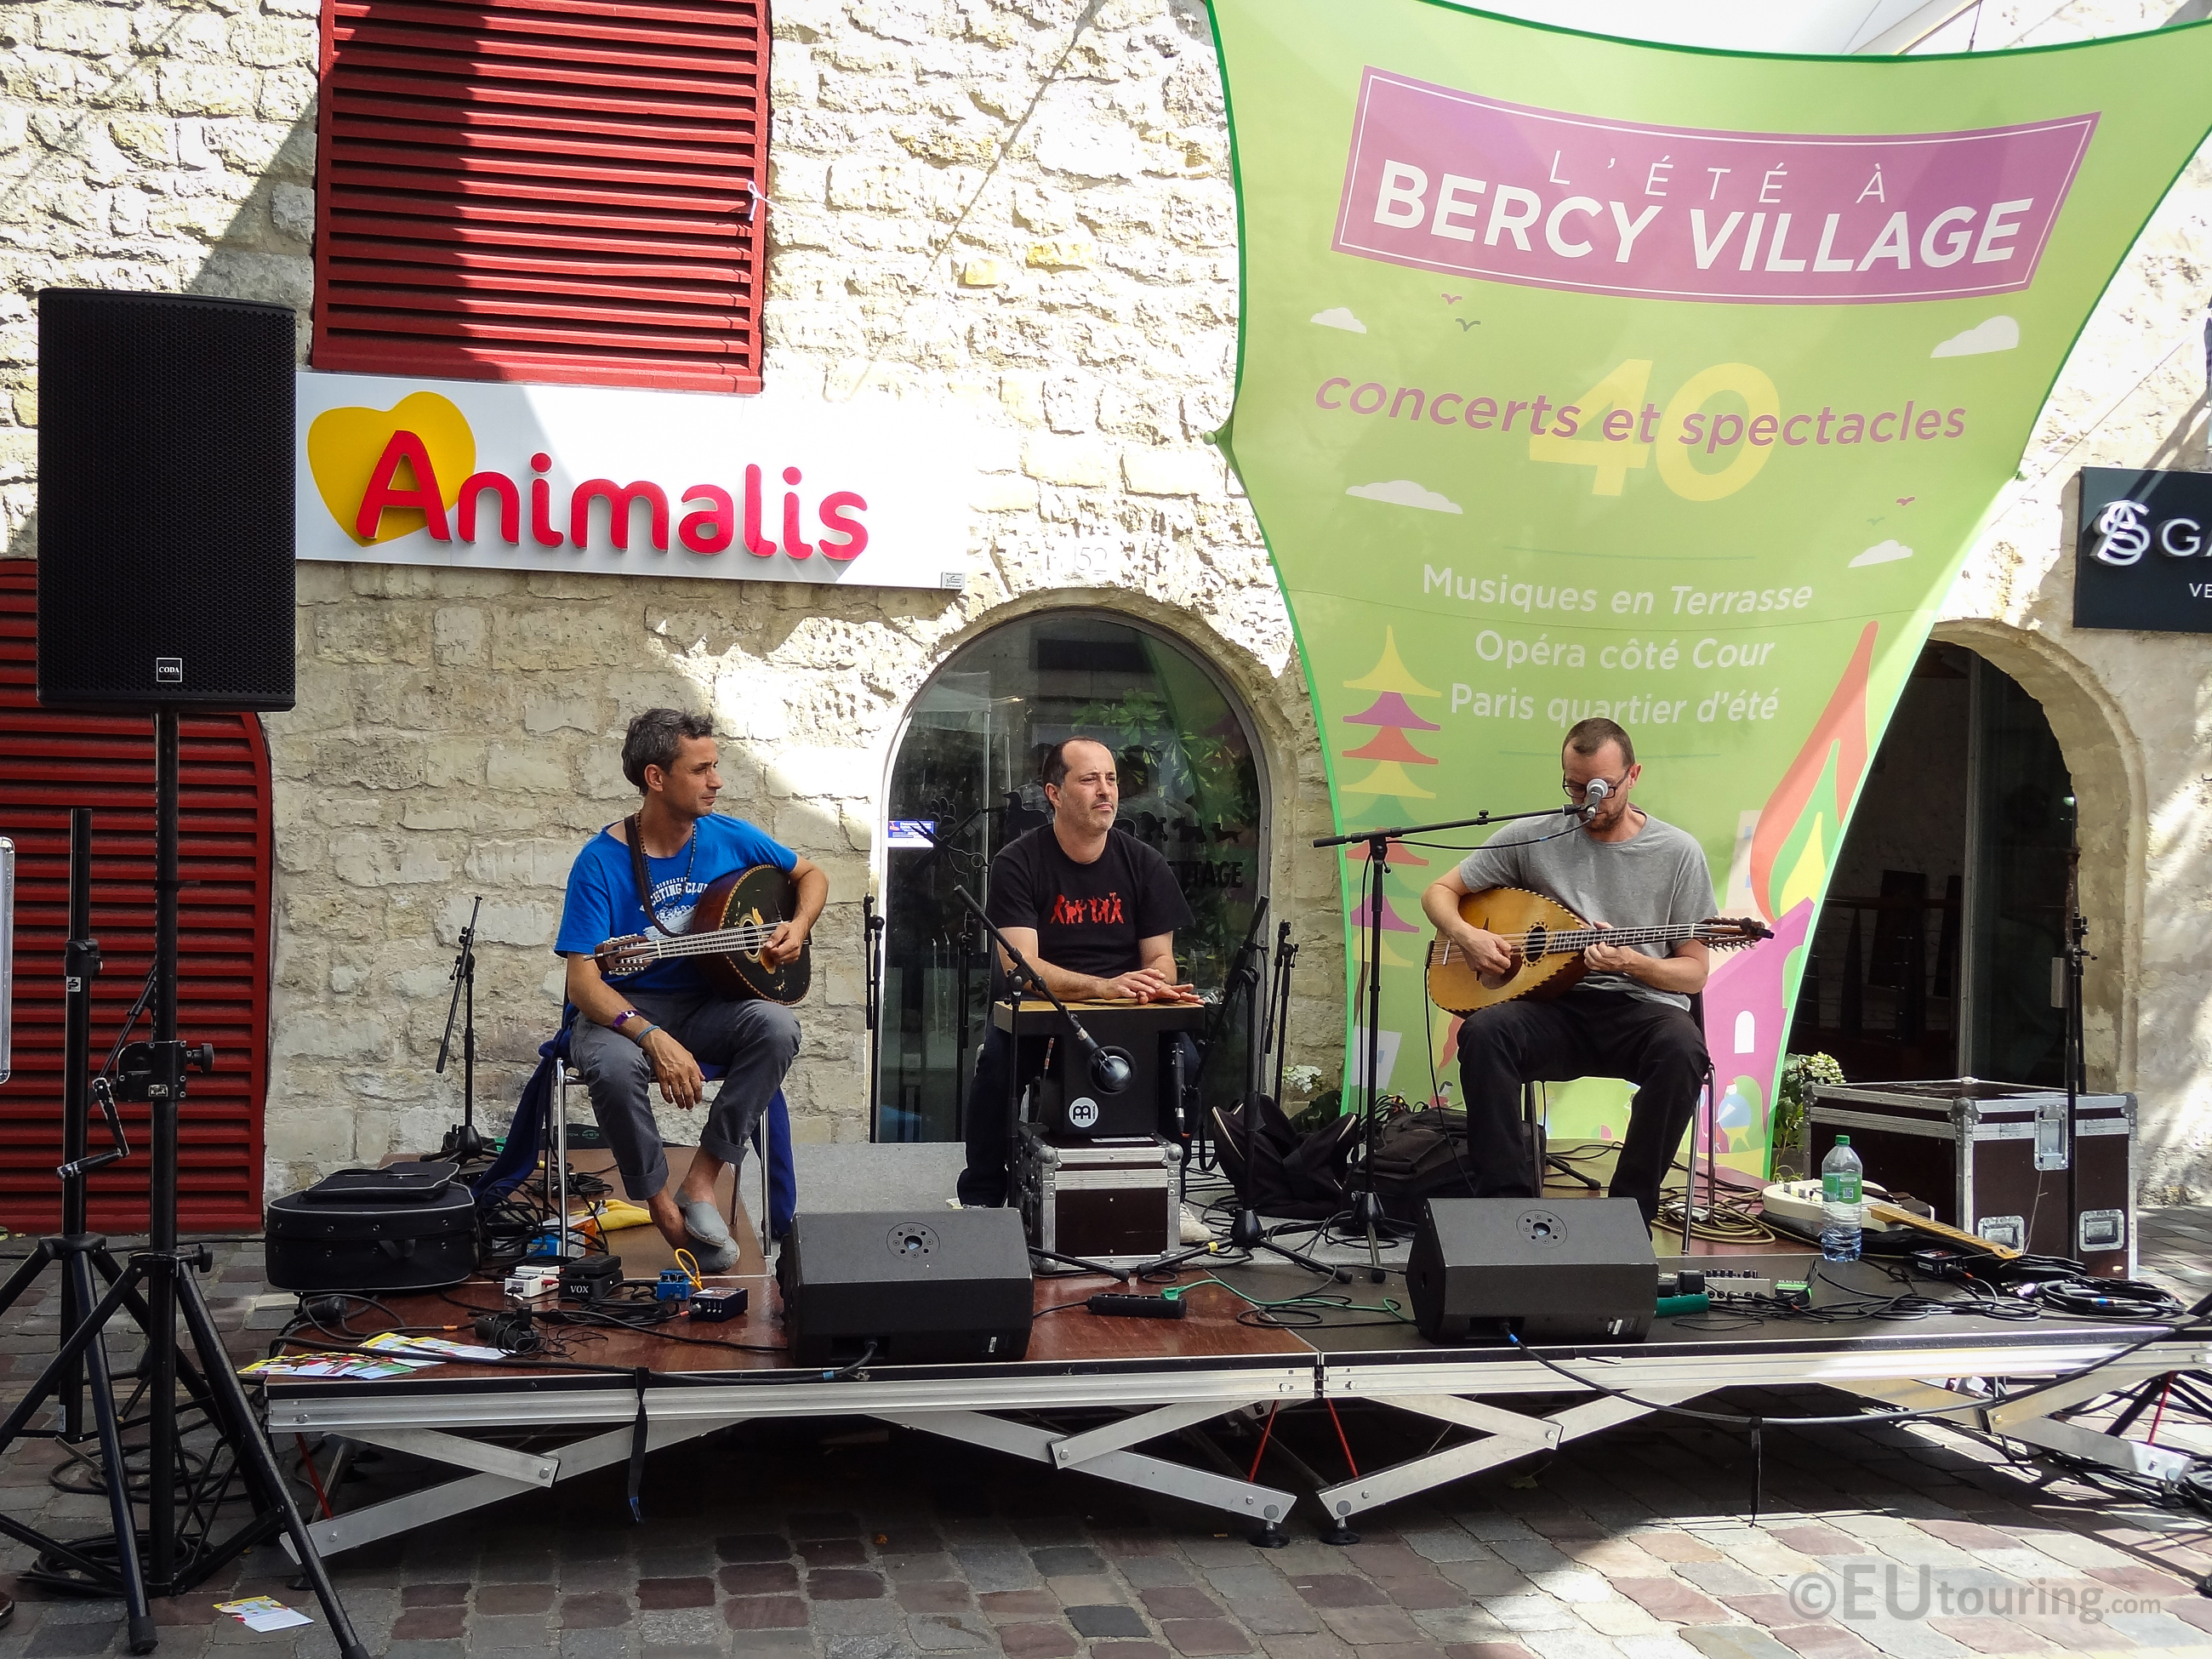 Band performing within Bercy Village